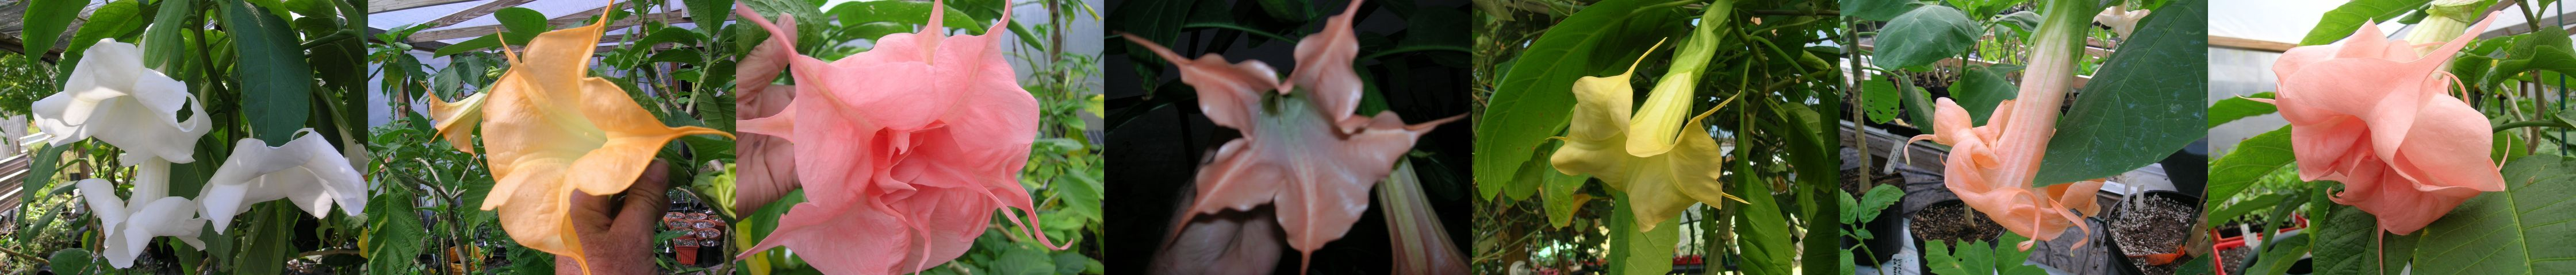 country garden brugmansia picture